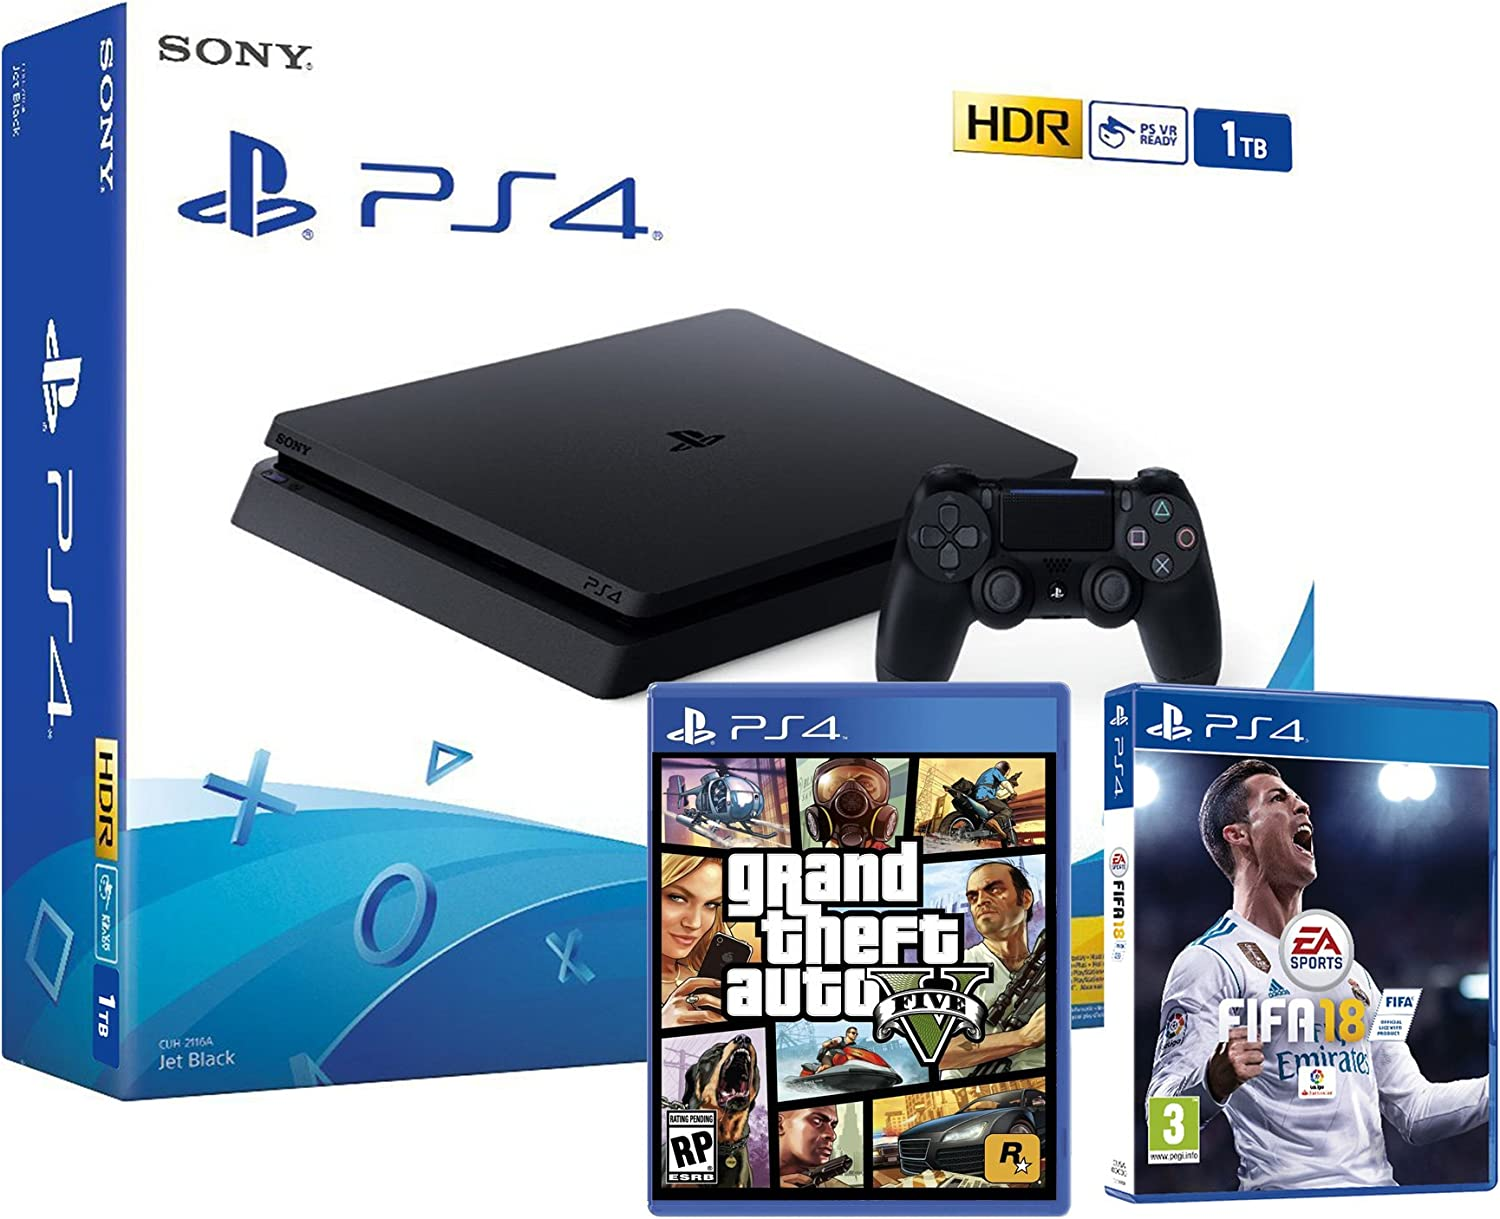 PS4 Slim 1Tb Negra Playstation 4 Consola - Pack 2 Juegos - FIFA 18 + GTA V: Amazon.es: Videojuegos